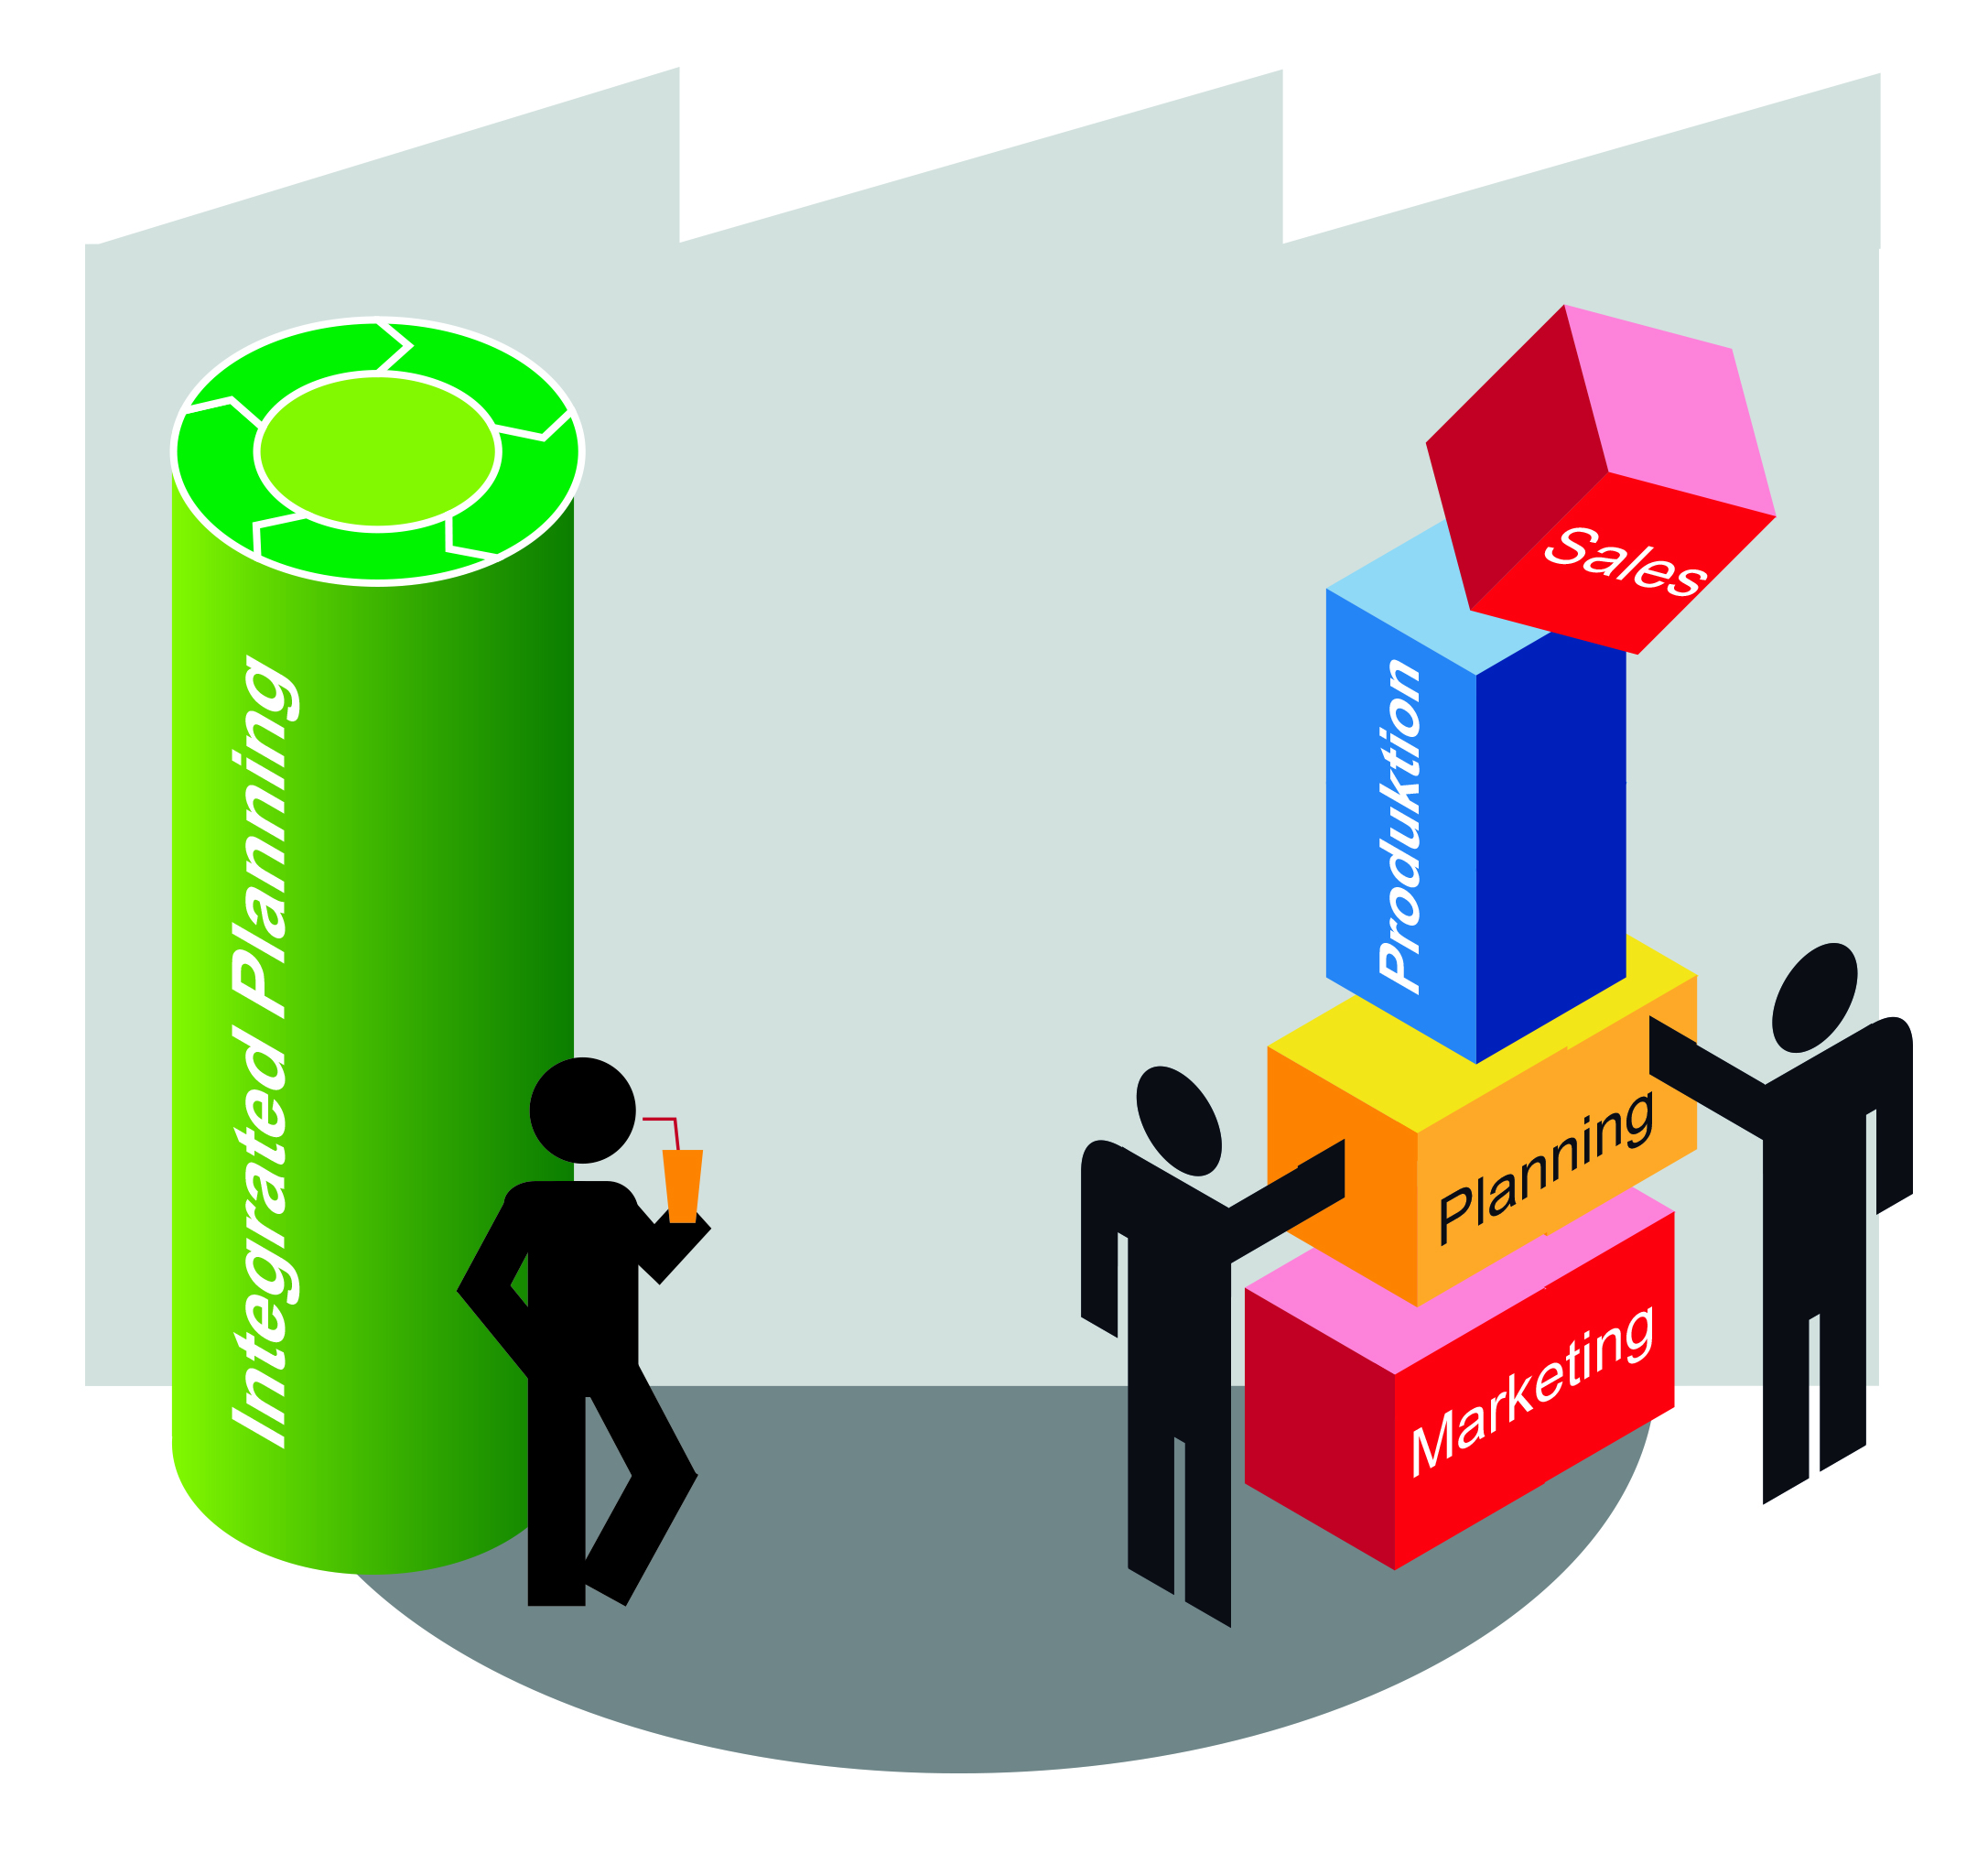 Integrated planning can help companies create and execute effective business models.